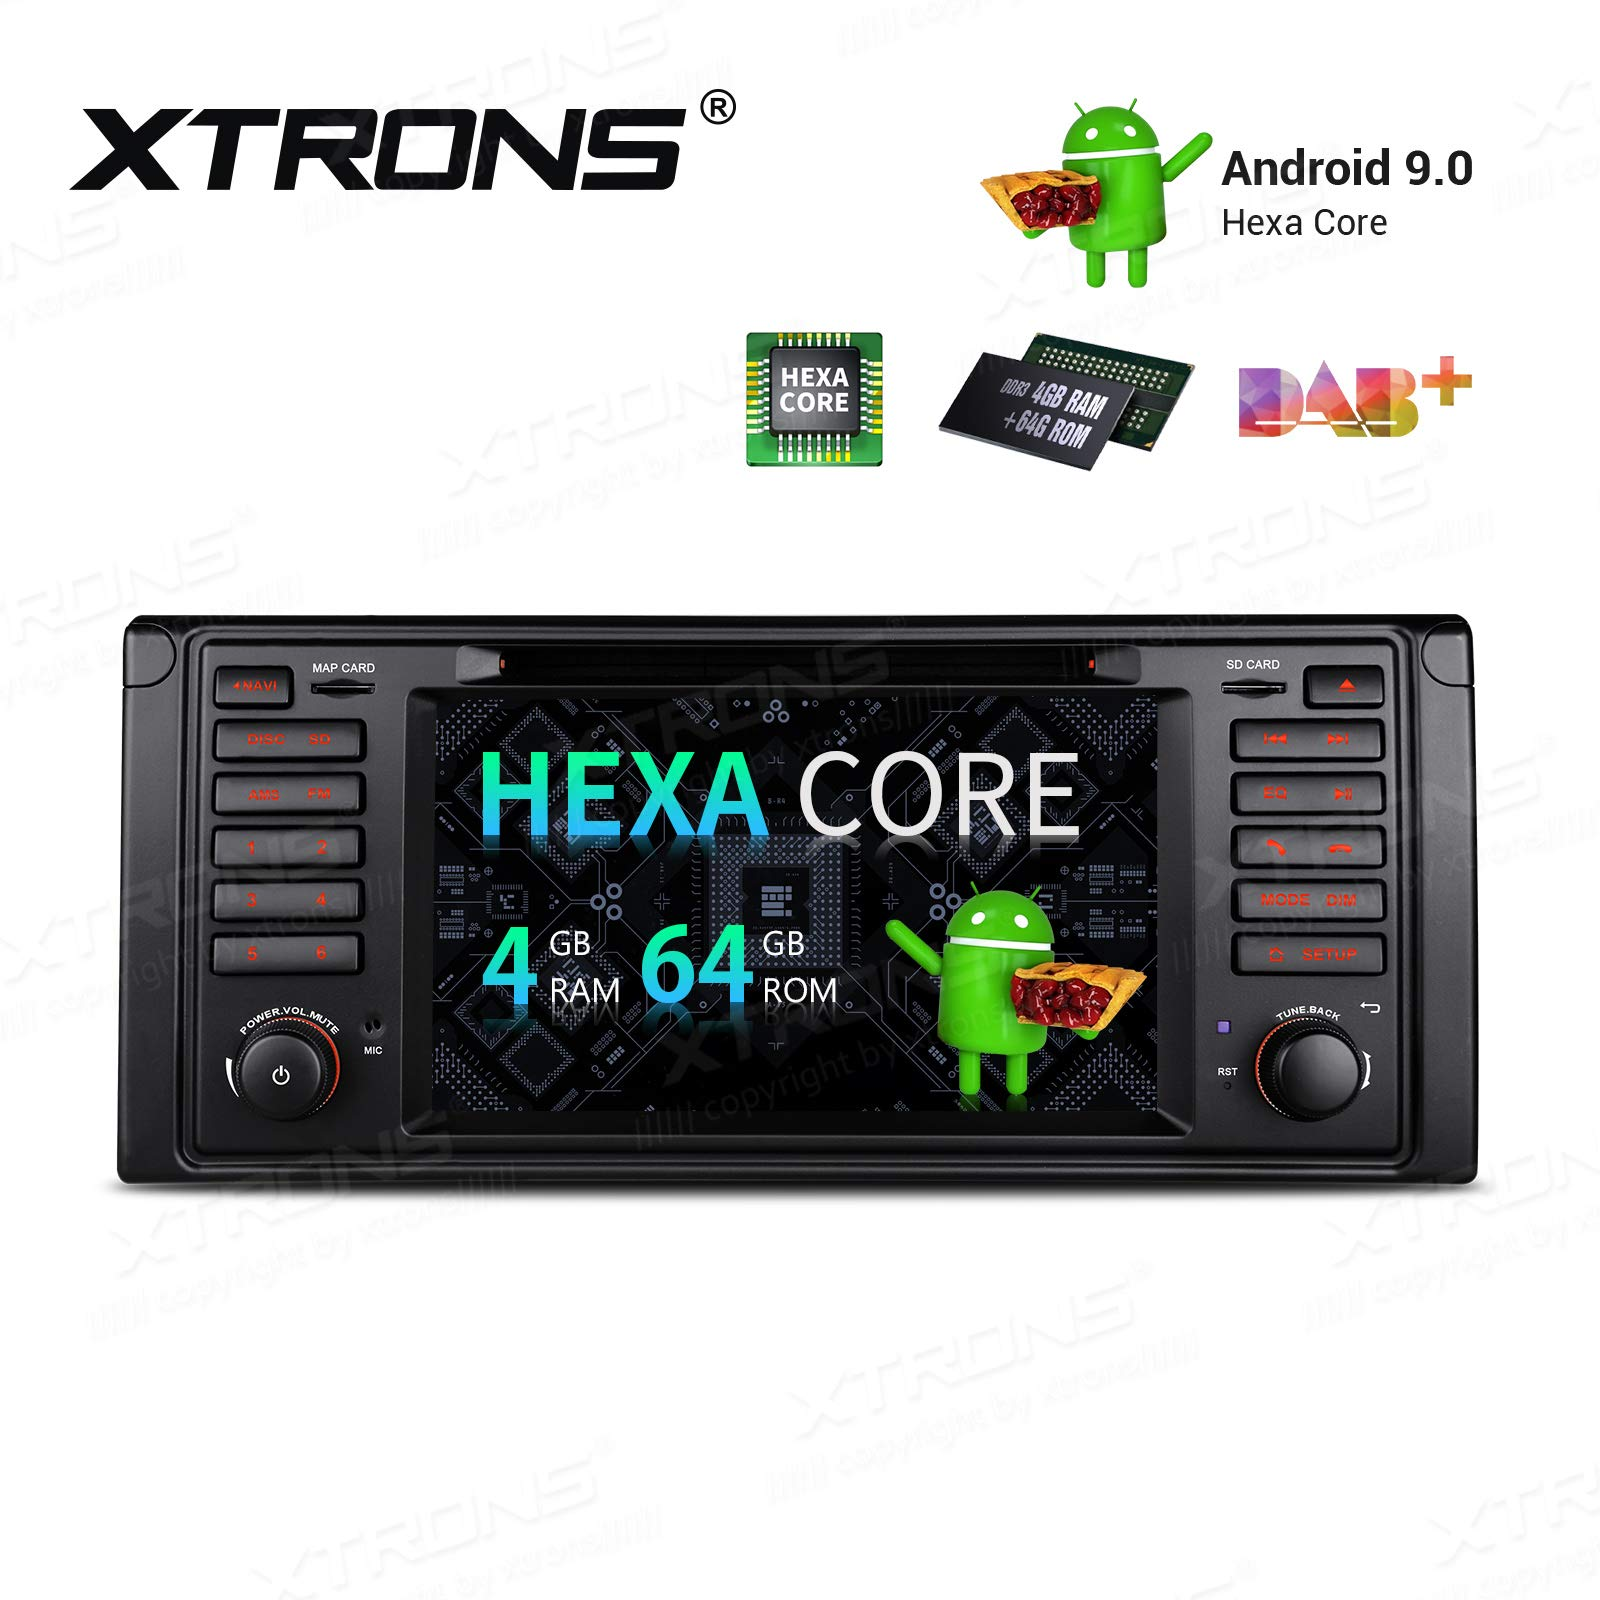 XTRONS-7-6-Core-Android-Autoradio-mit-Touchscreen-Auto-DVD-Player-Android-90-Hexa-Core-Autostereo-untersttzt-HDMI-Ausgang-4G-Bluetooth-4GB-RAM-64GB-ROM-DAB-OBD2-TPMS-FR-BMW-E39-5-Serien